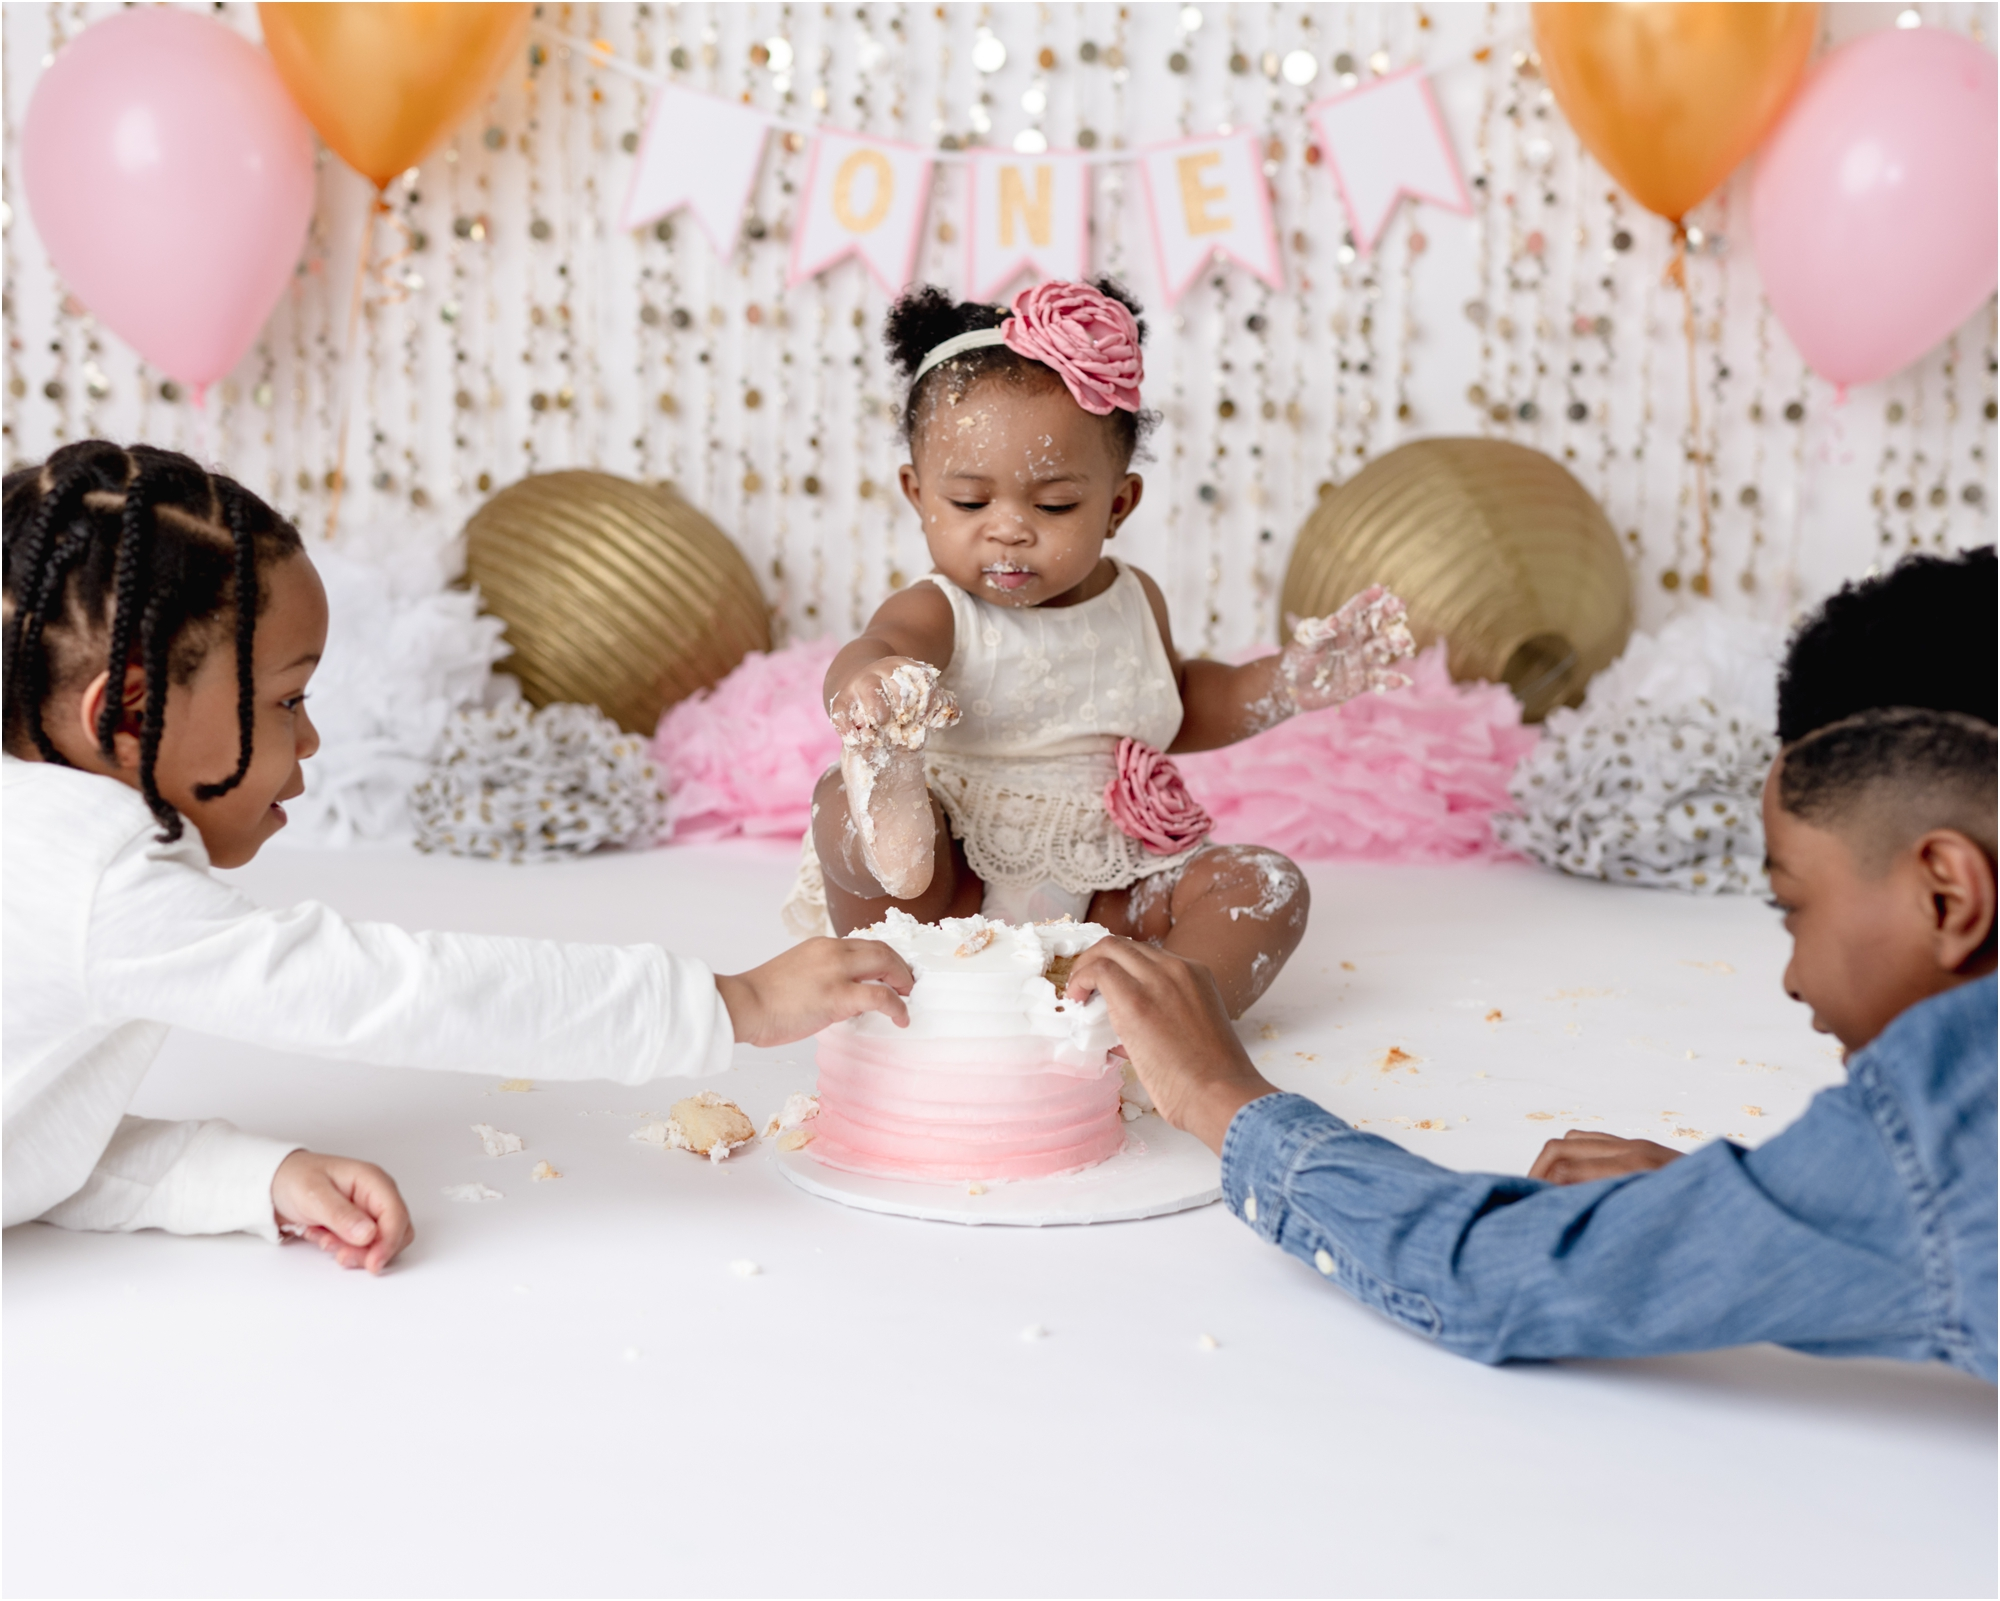 Baby girl with frosting on toes during cake smash photoshoot in Houston studio. Photo by Lifetime of Clicks Photography.